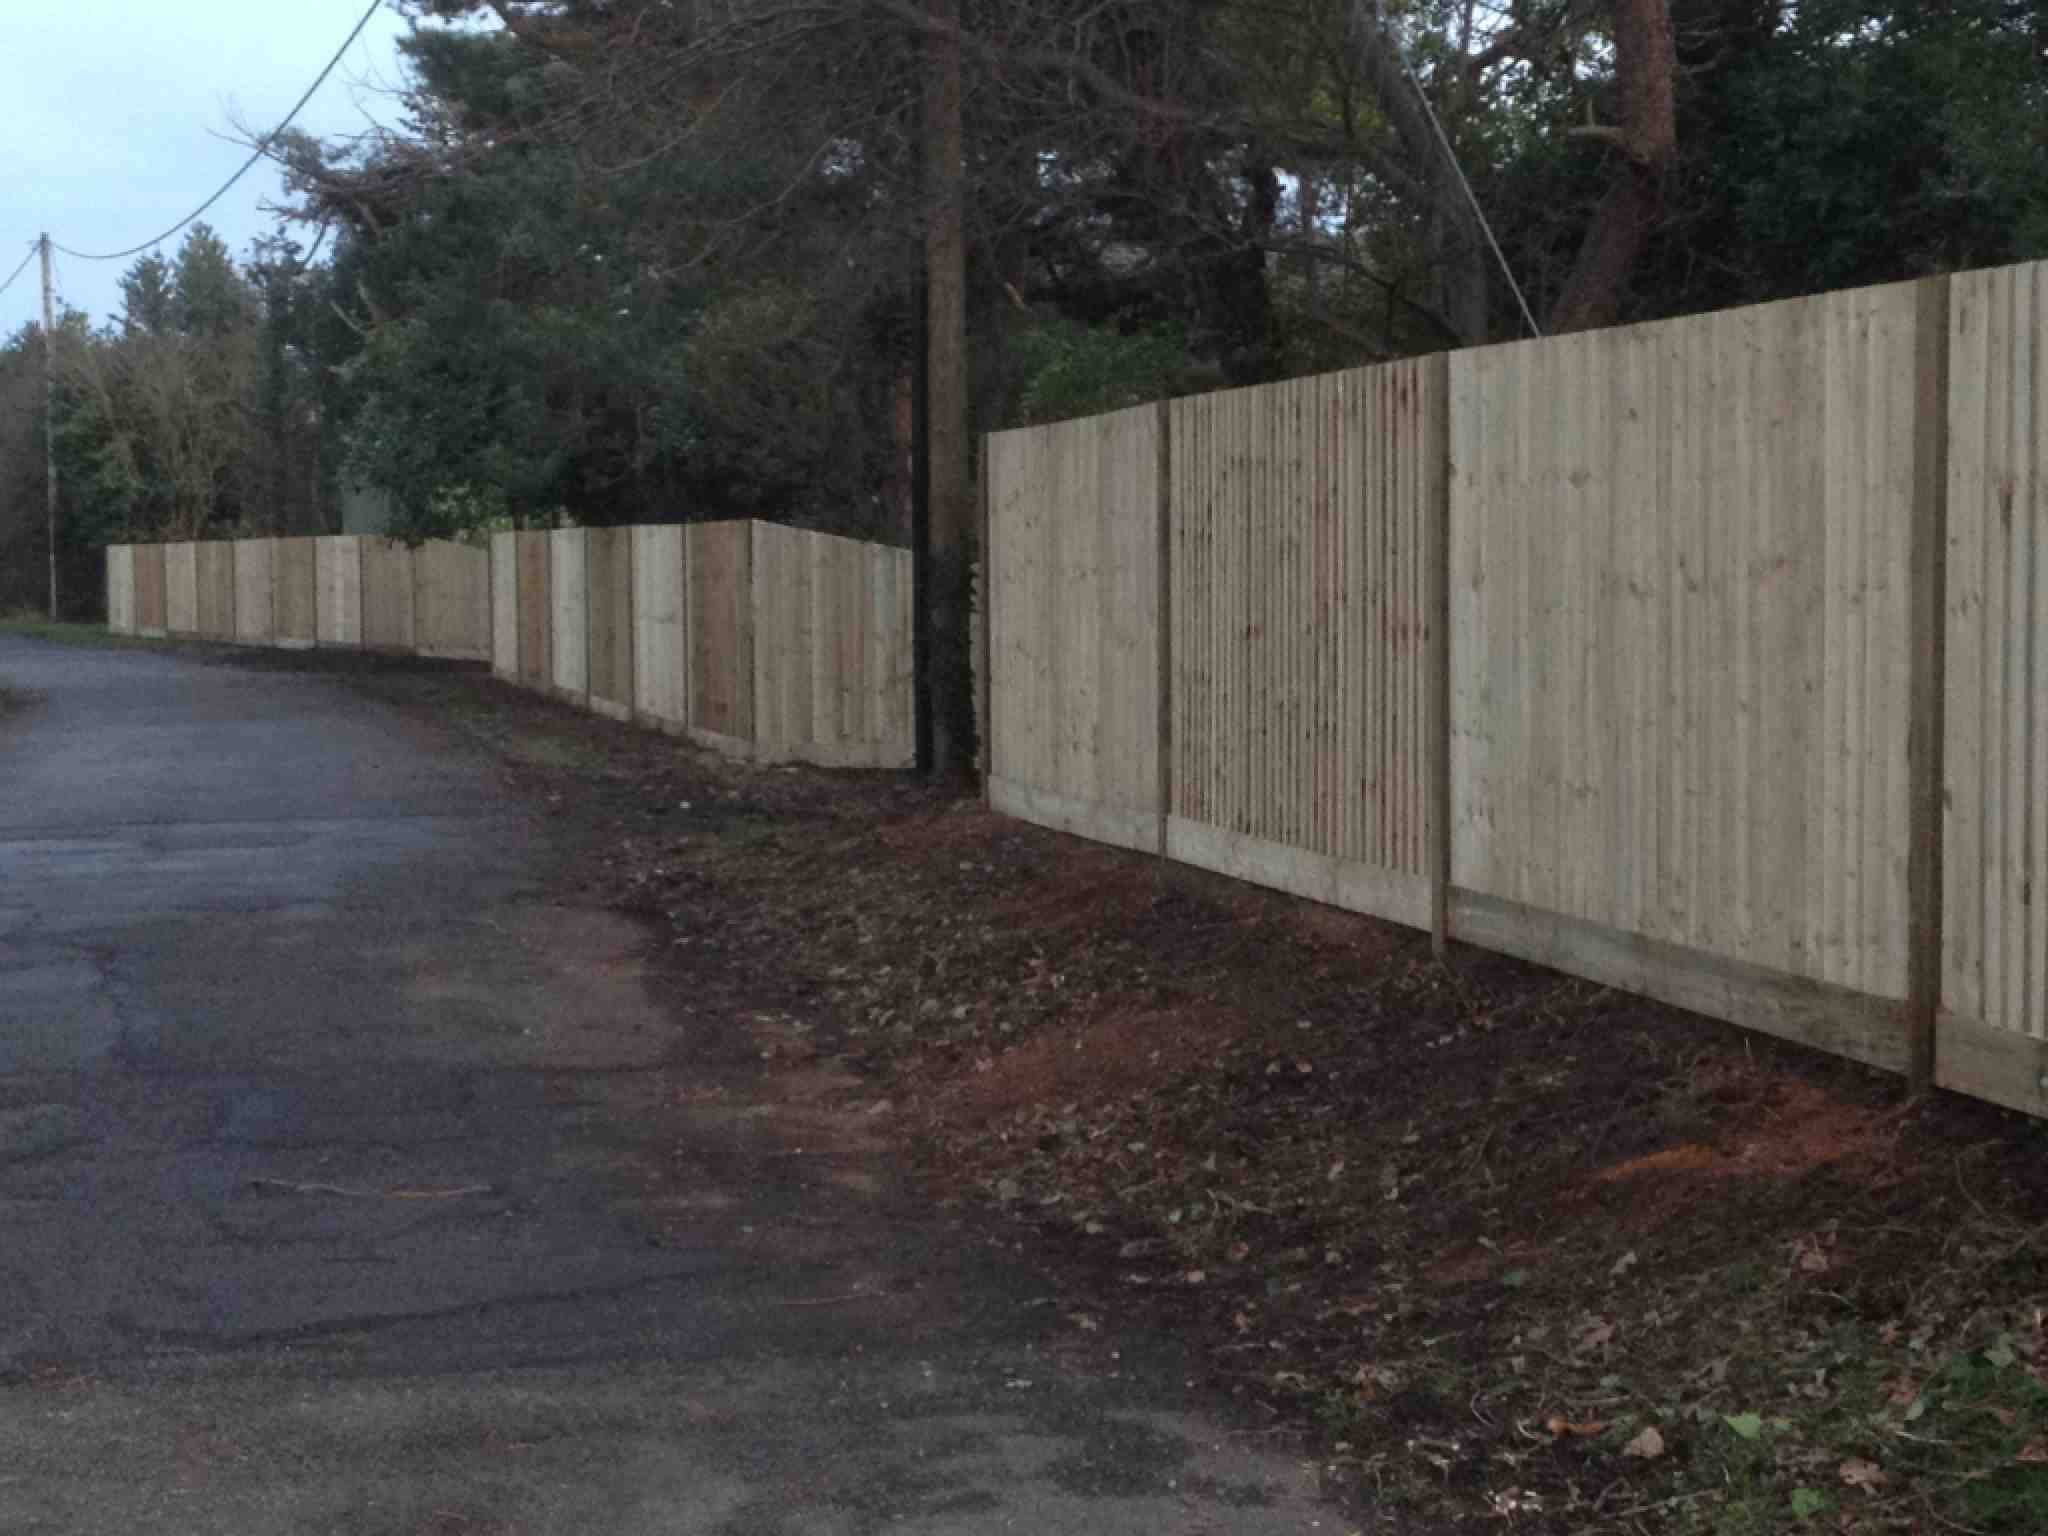 Portfolio eamples of our new fencing and gates company service in Derby 19